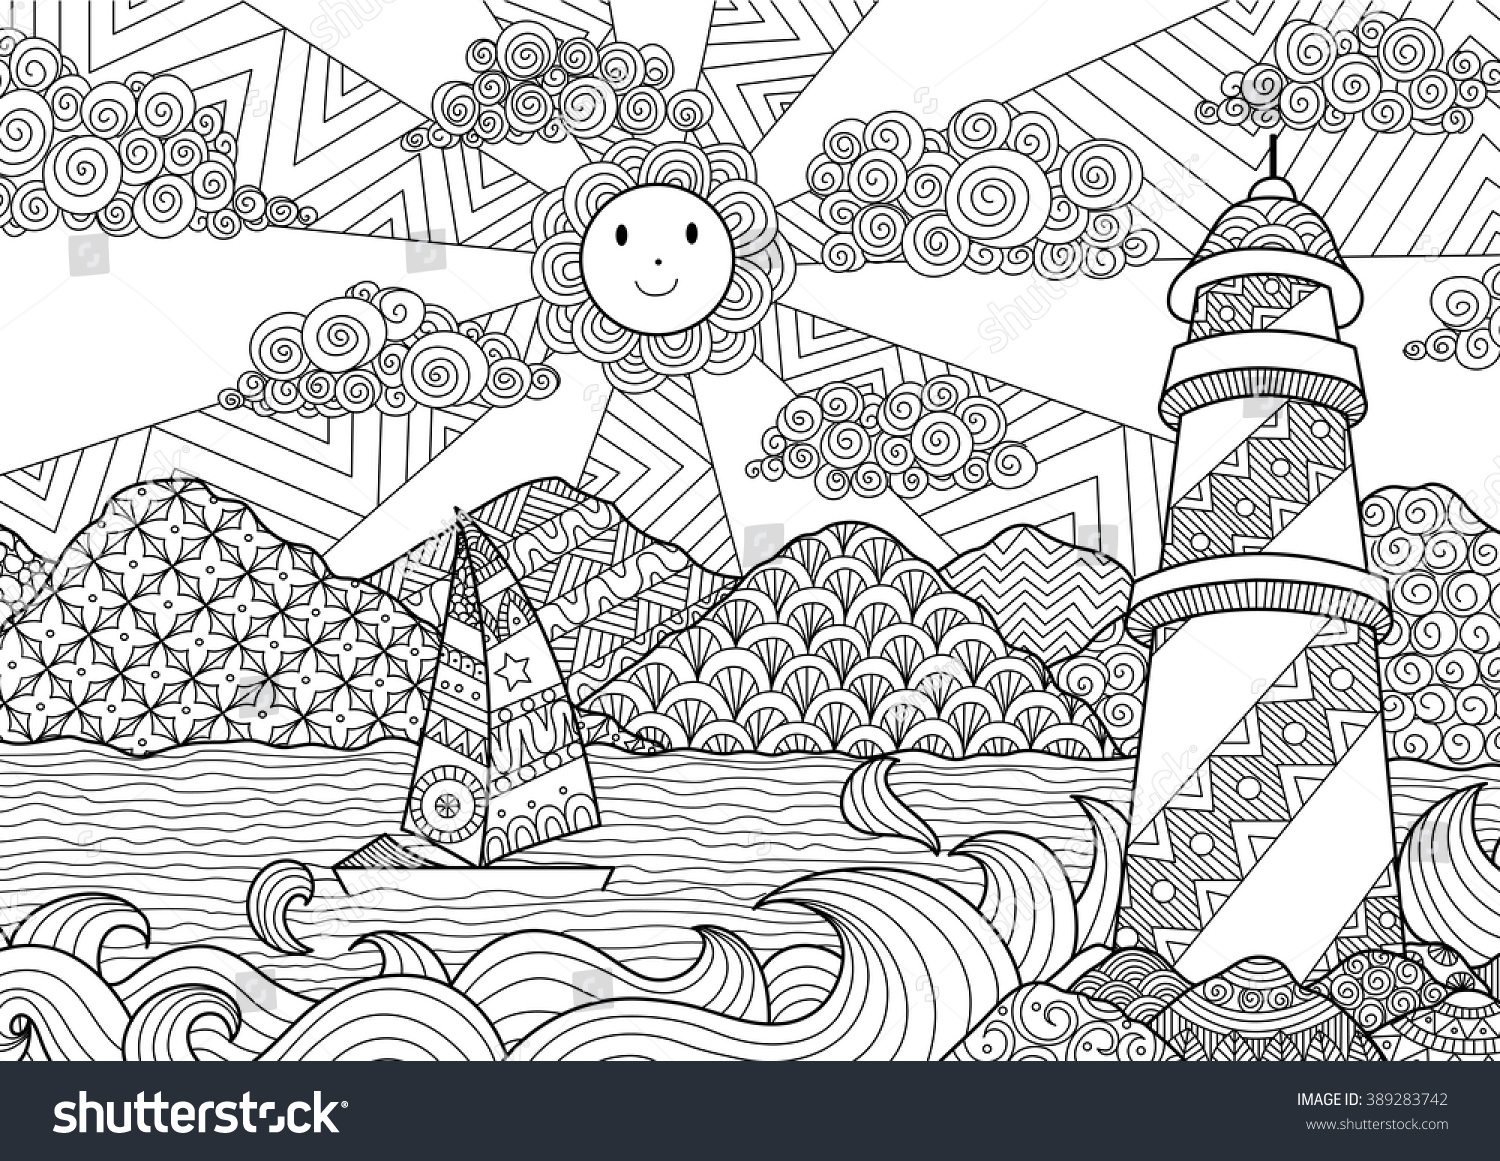 Line Art Book : Seascape line art design coloring book stock vector